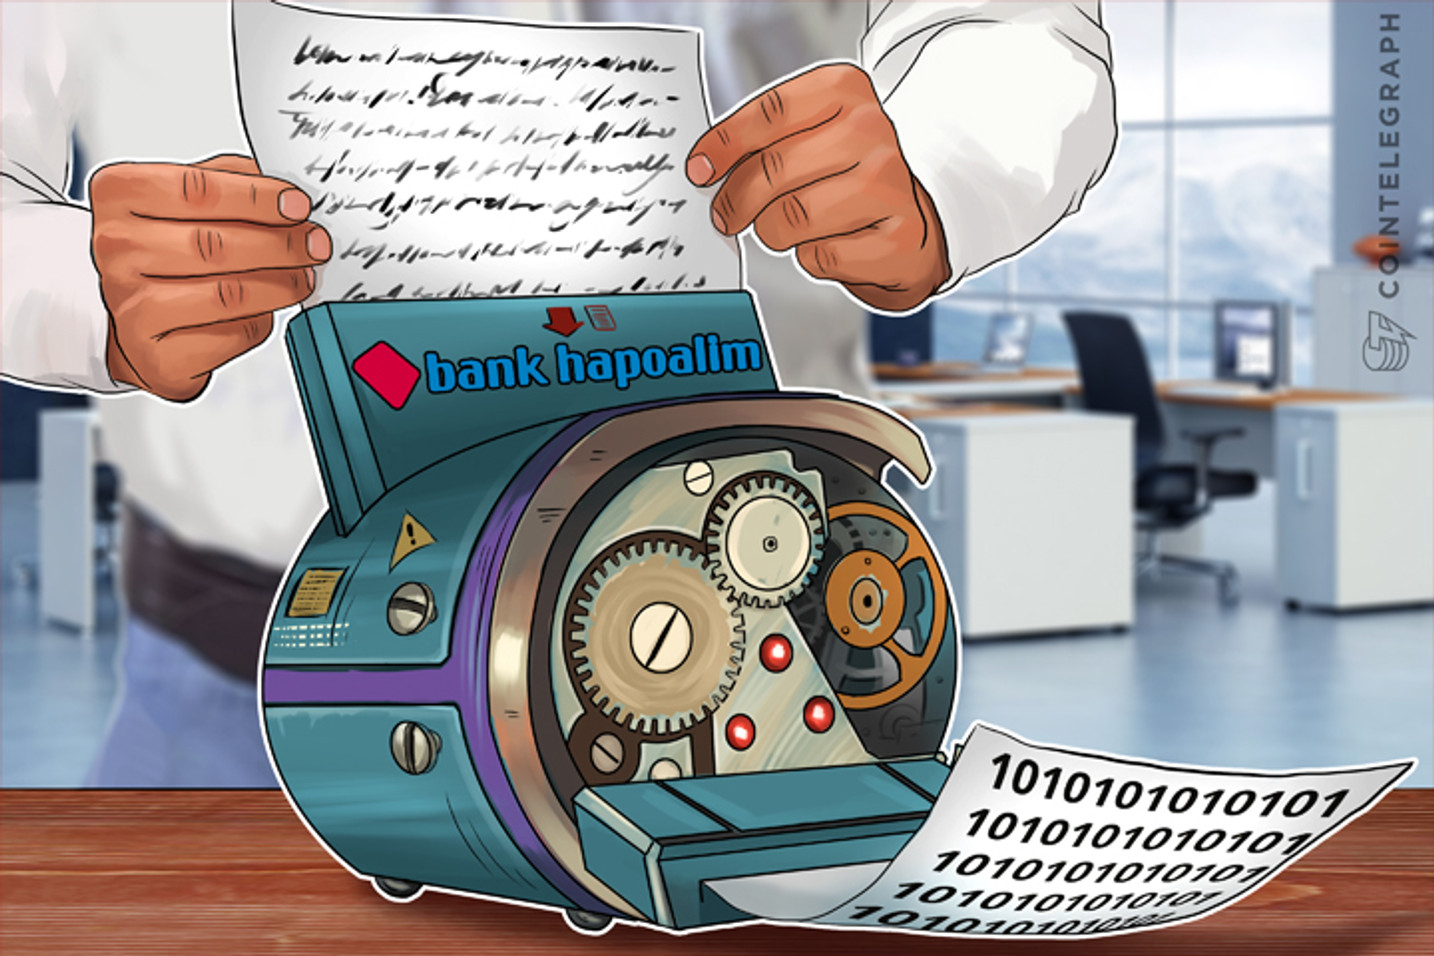 Largest Bank in Israel Works with Microsoft for Blockchain Trial